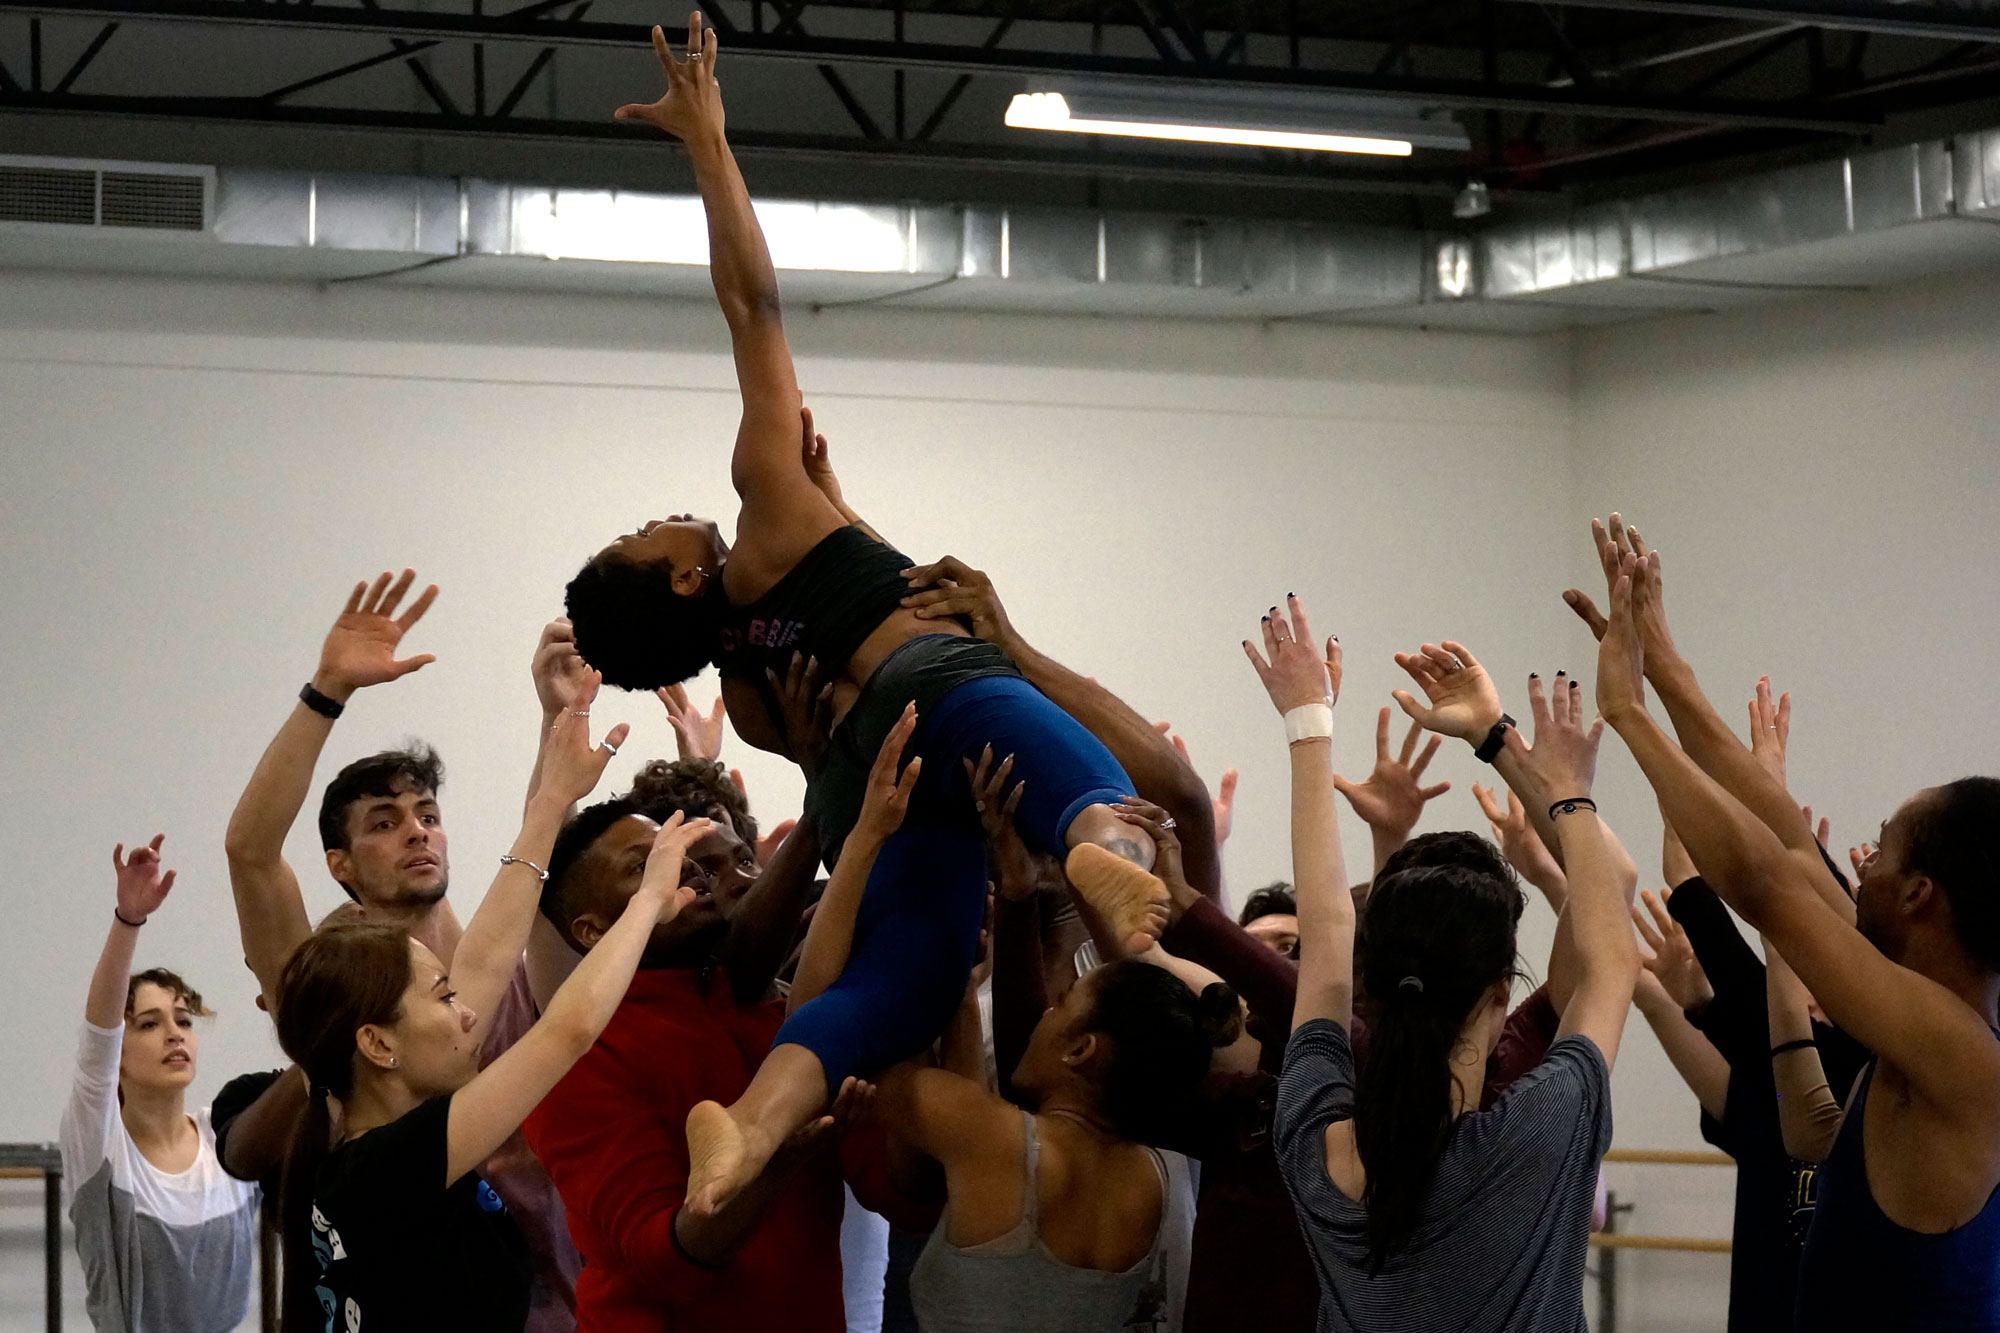 <p>Artists of the Colorado Ballet and Cleo Parker Robinson Dance Ensemble in rehearsal for a new contemporary work by Parker Robinson at the Colorado Ballet studios in Denver on Feb. 22, 2019.</p>